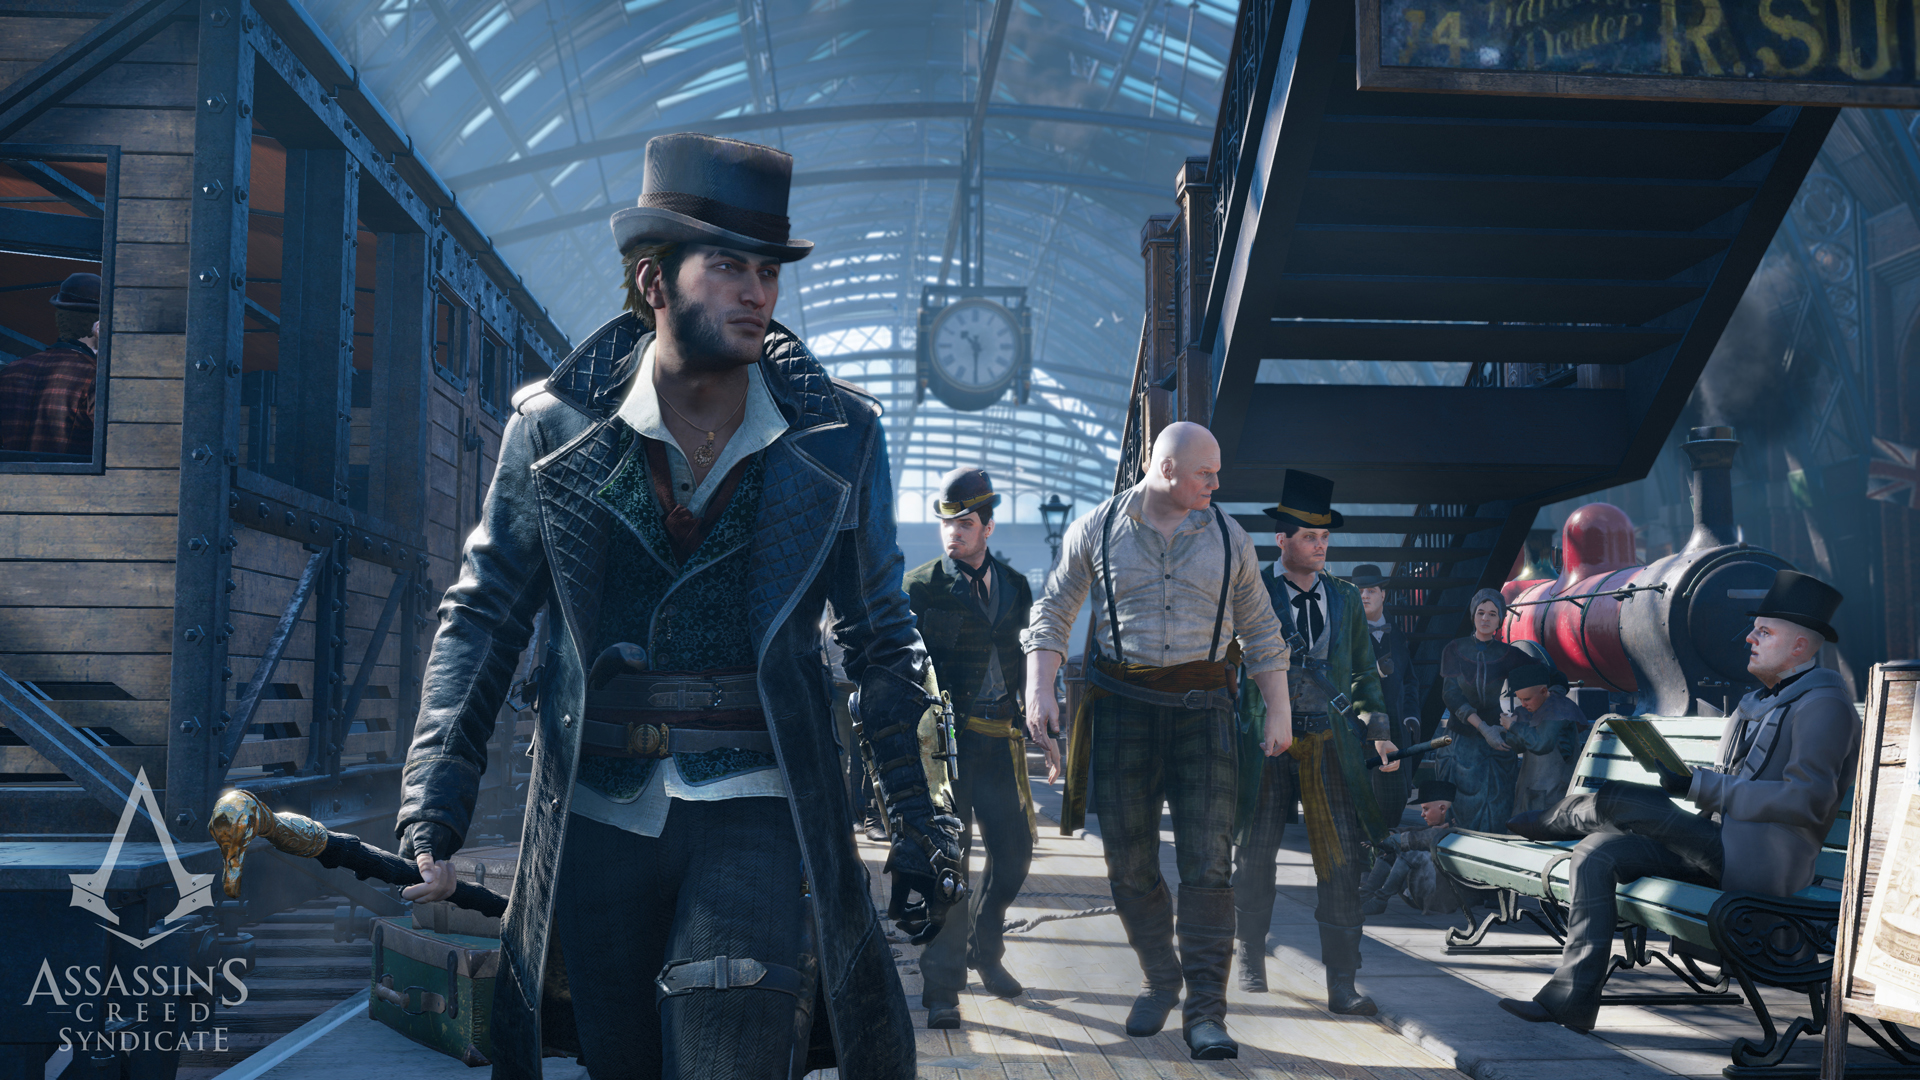 download assassin's creed syndicate gold edition-codex cracked full version singlelink iso rar multi 19 language free for pc